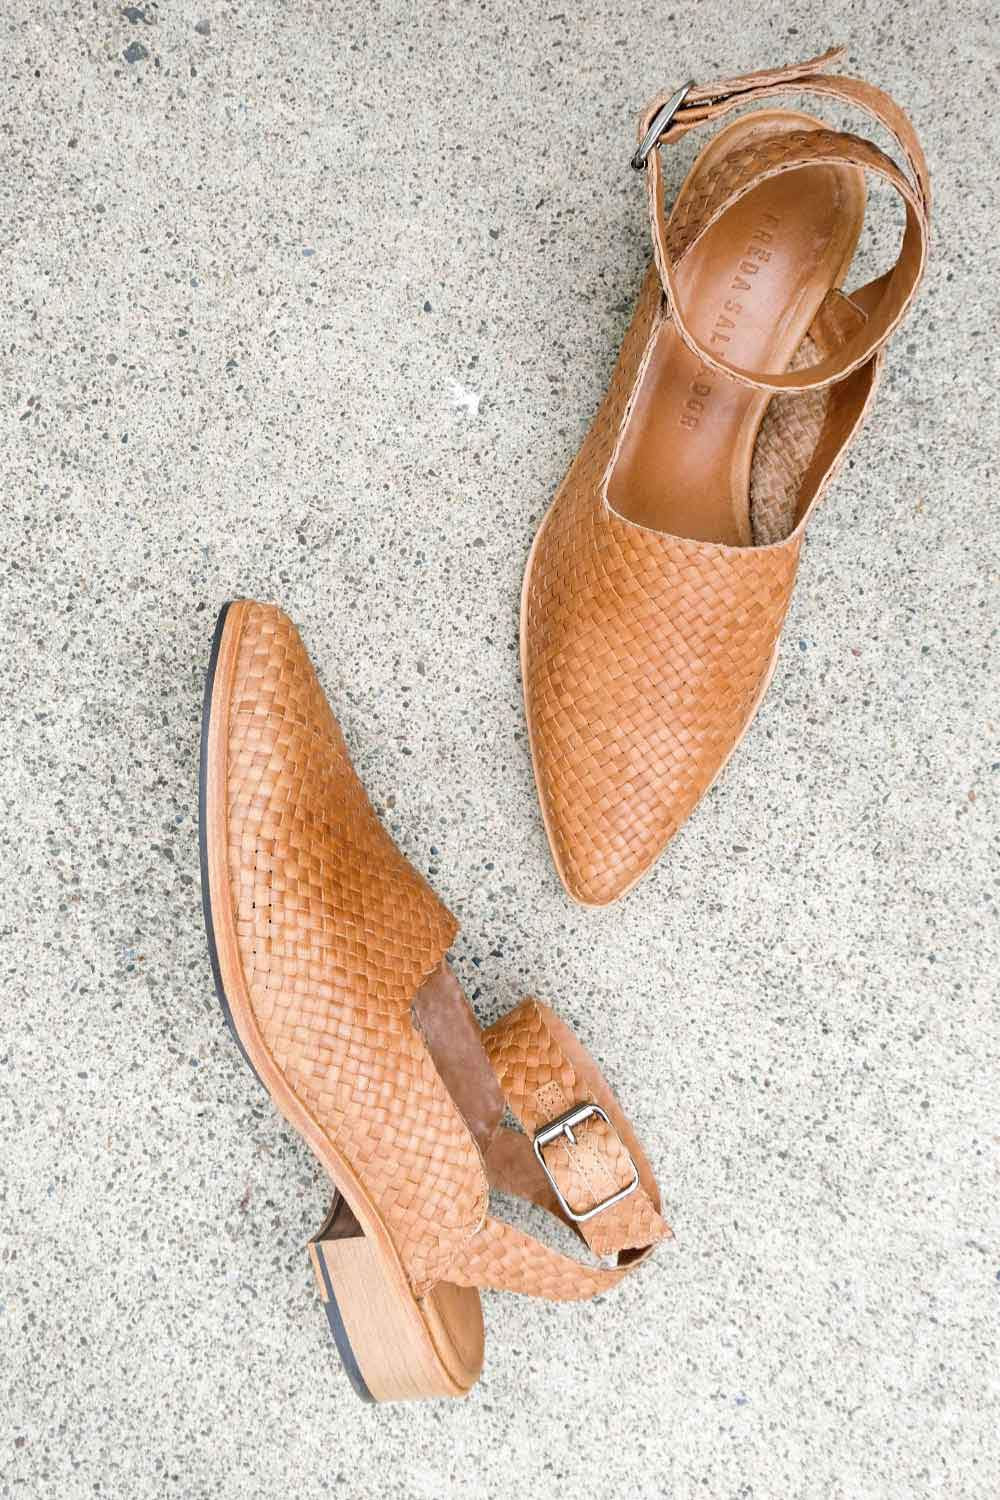 MARBELLA Handwoven Flat - FREDA SALVADOR Power Shoes for Power Women